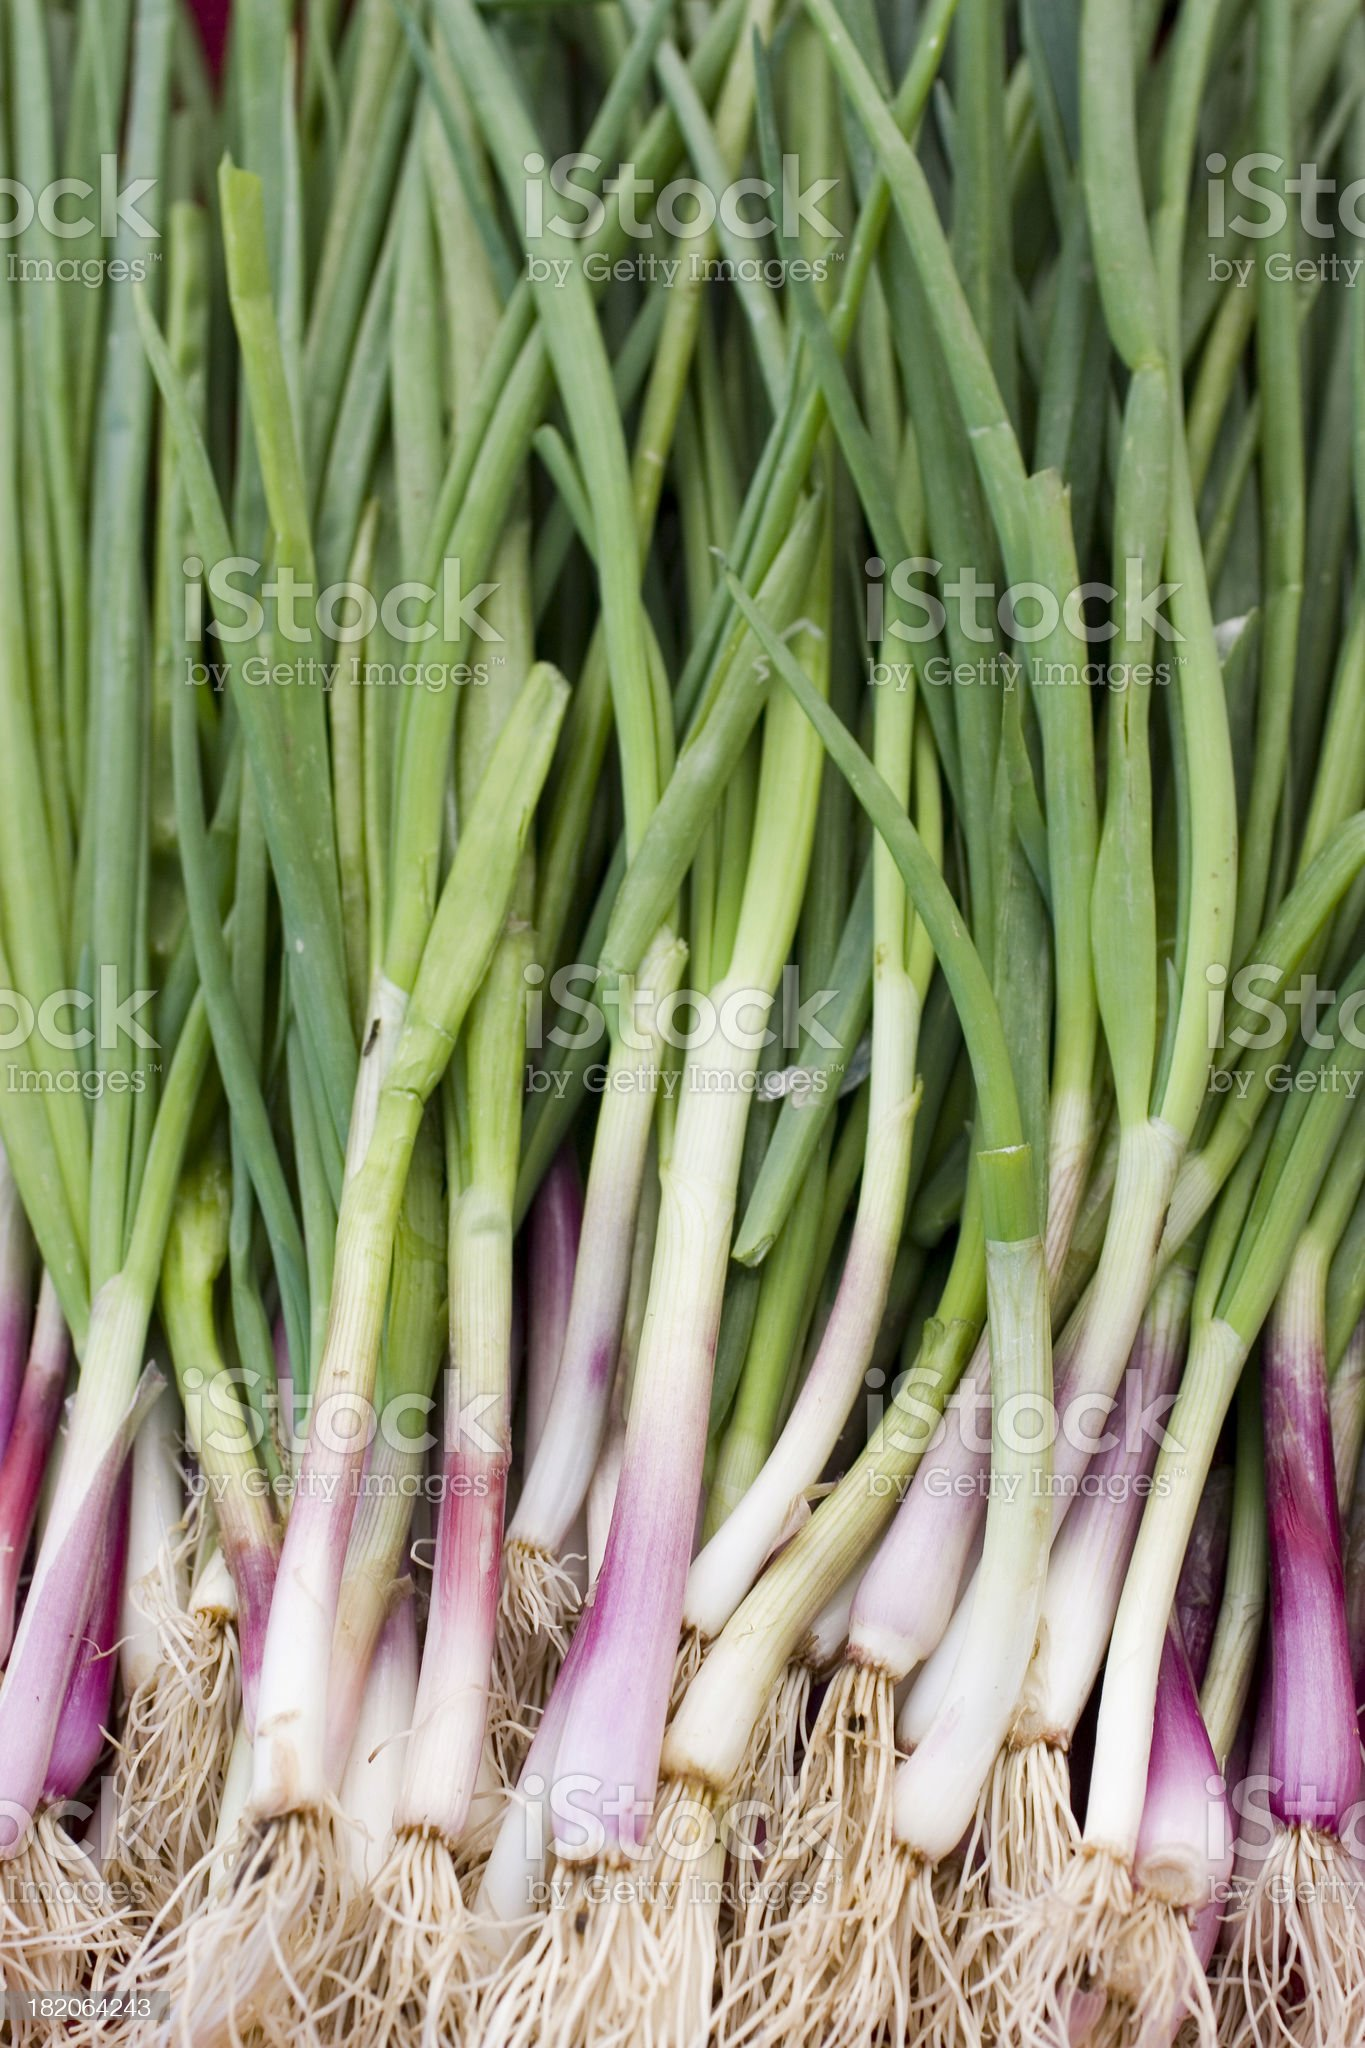 Farmers Market: Spring Garlic royalty-free stock photo